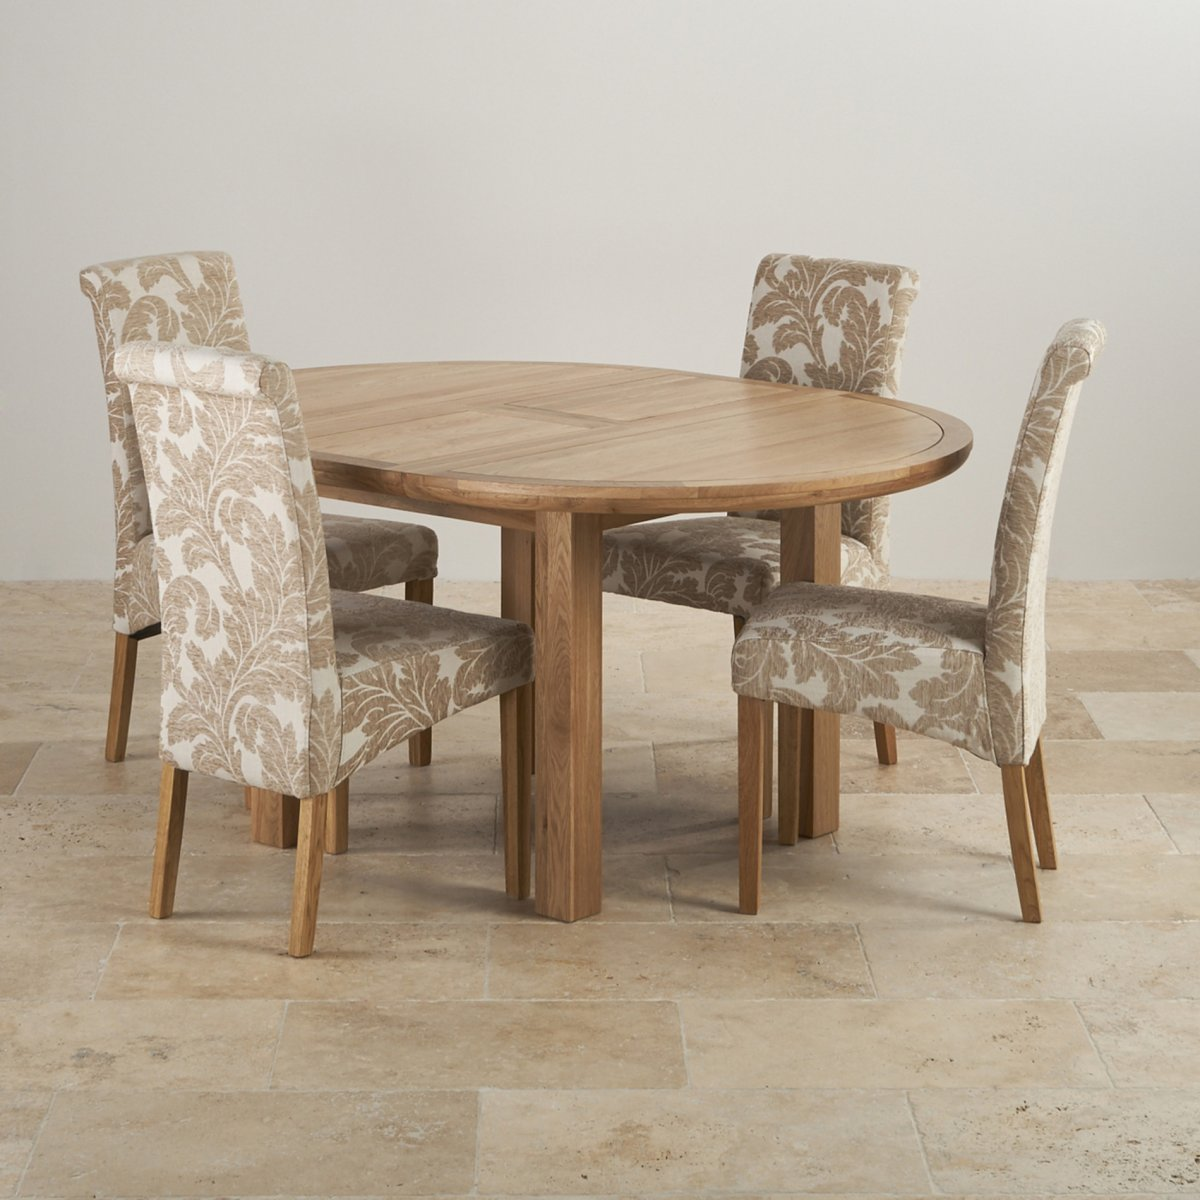 Knightsbridge oak dining set round extending table 4 for Round dining table set for 4